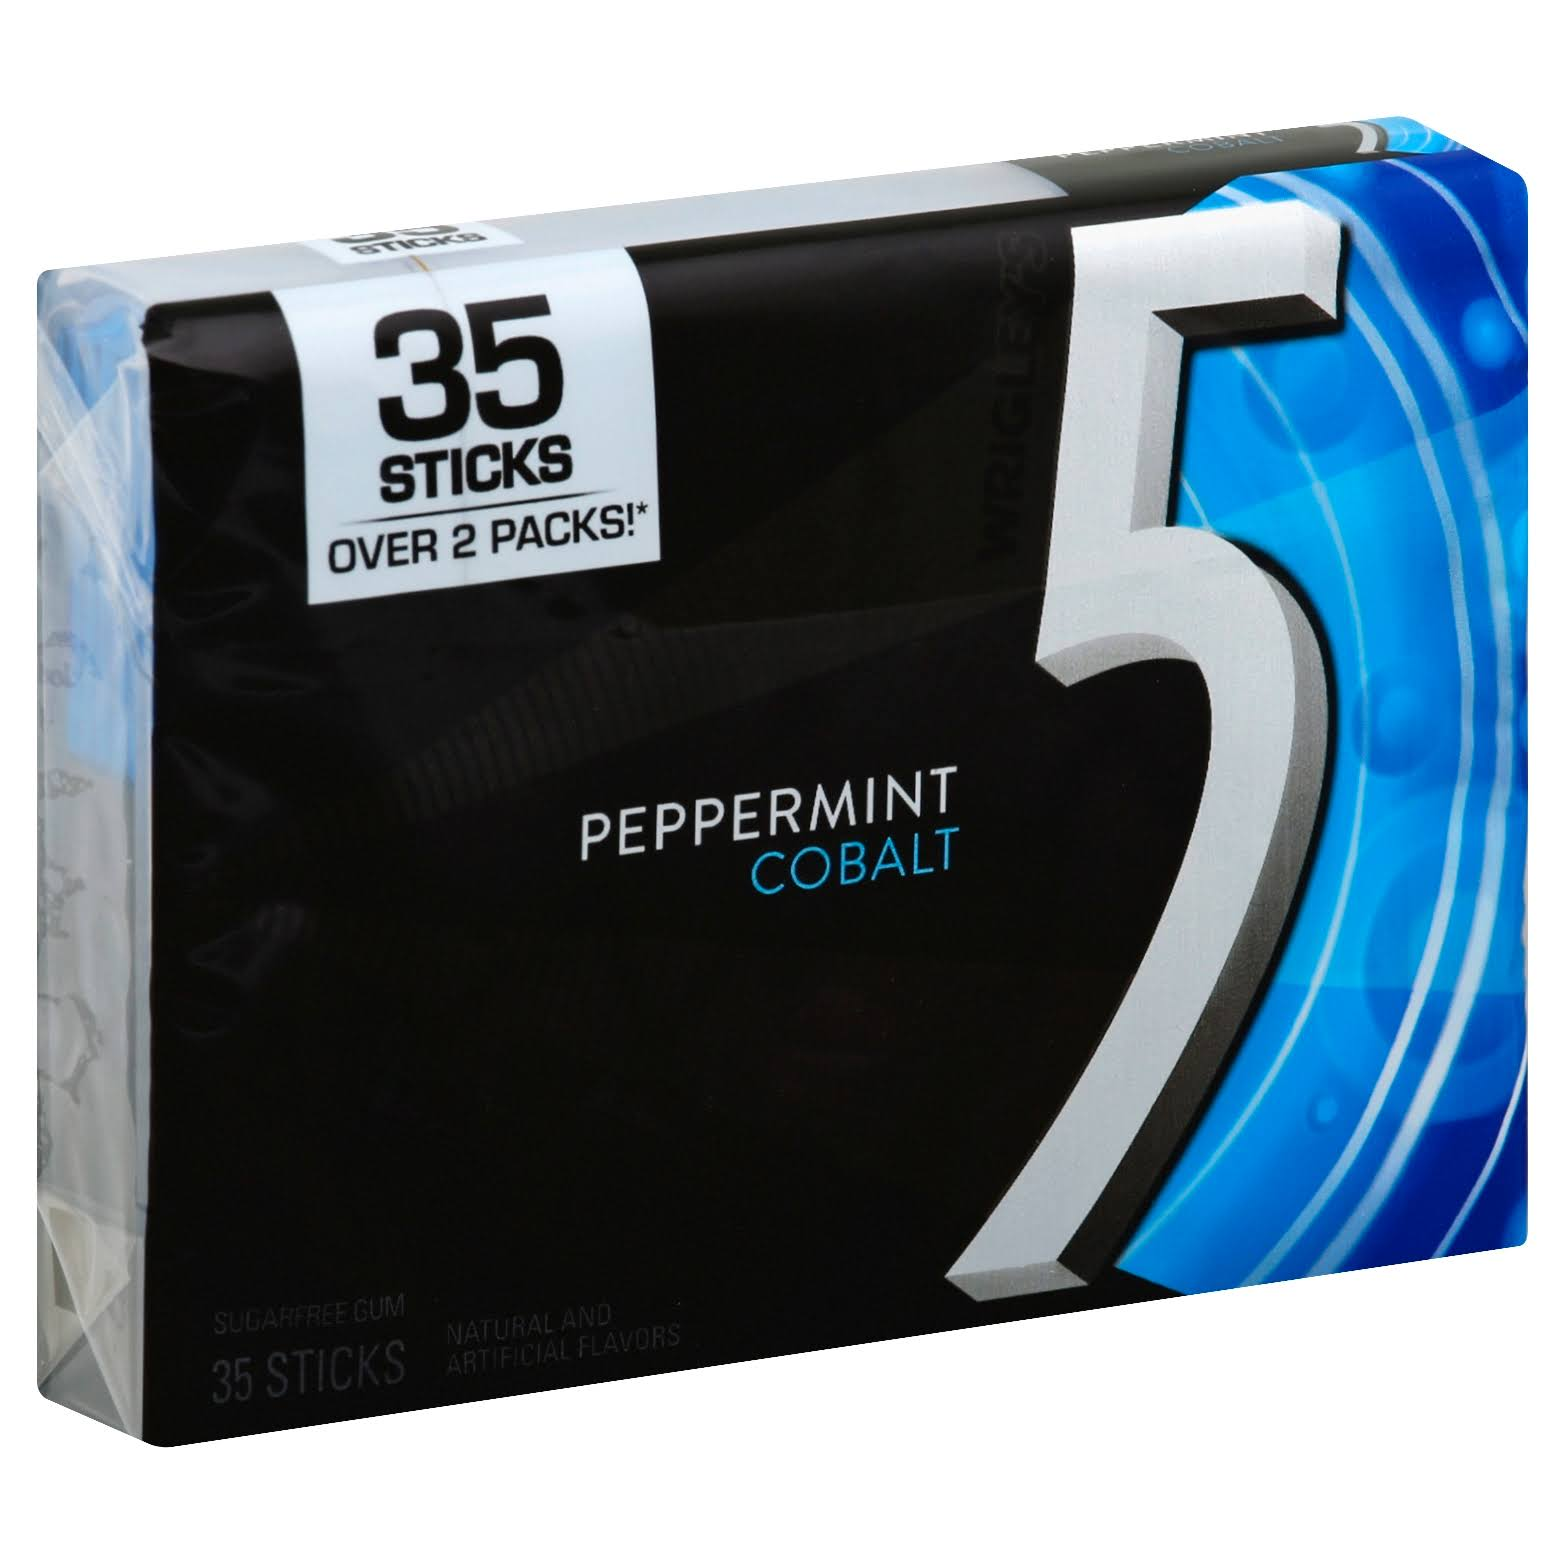 Wrigley's 5 Peppermint Cobalt Sugarfree Gum - 35 Sticks